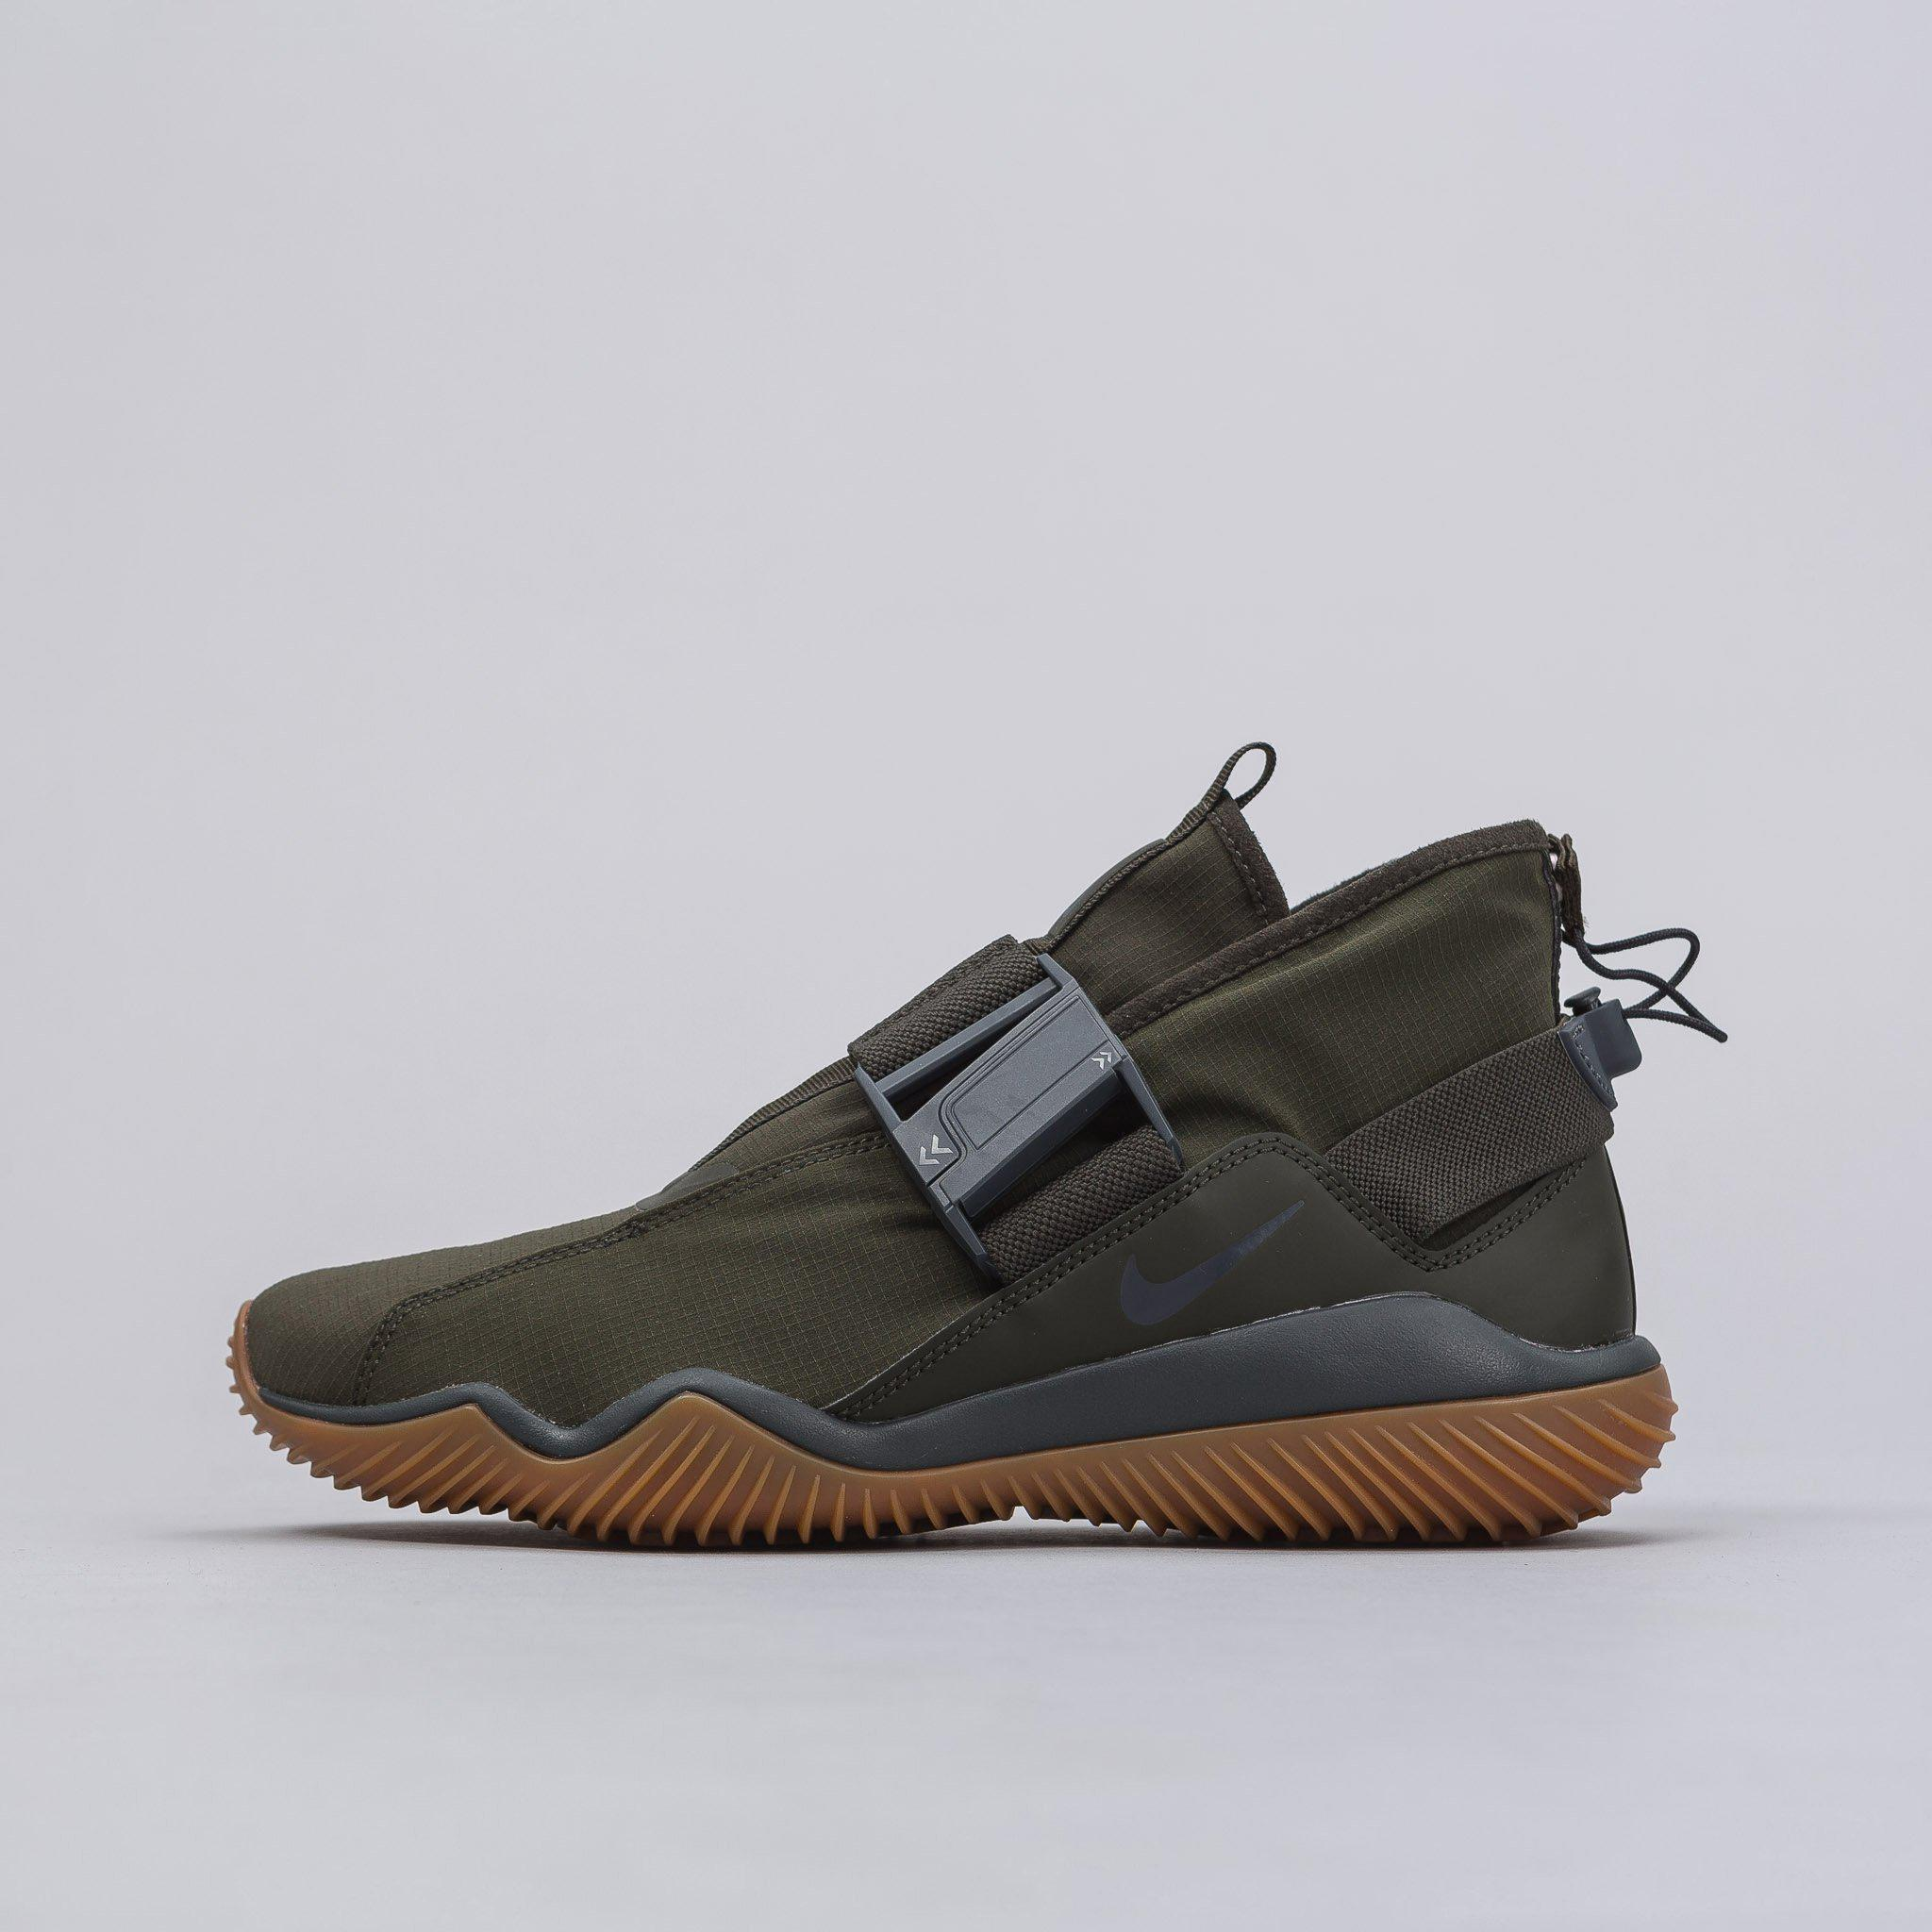 d4073bba804 ... reduced lyst nike komyuter prm in olive in green for men cfbe2 fff1f